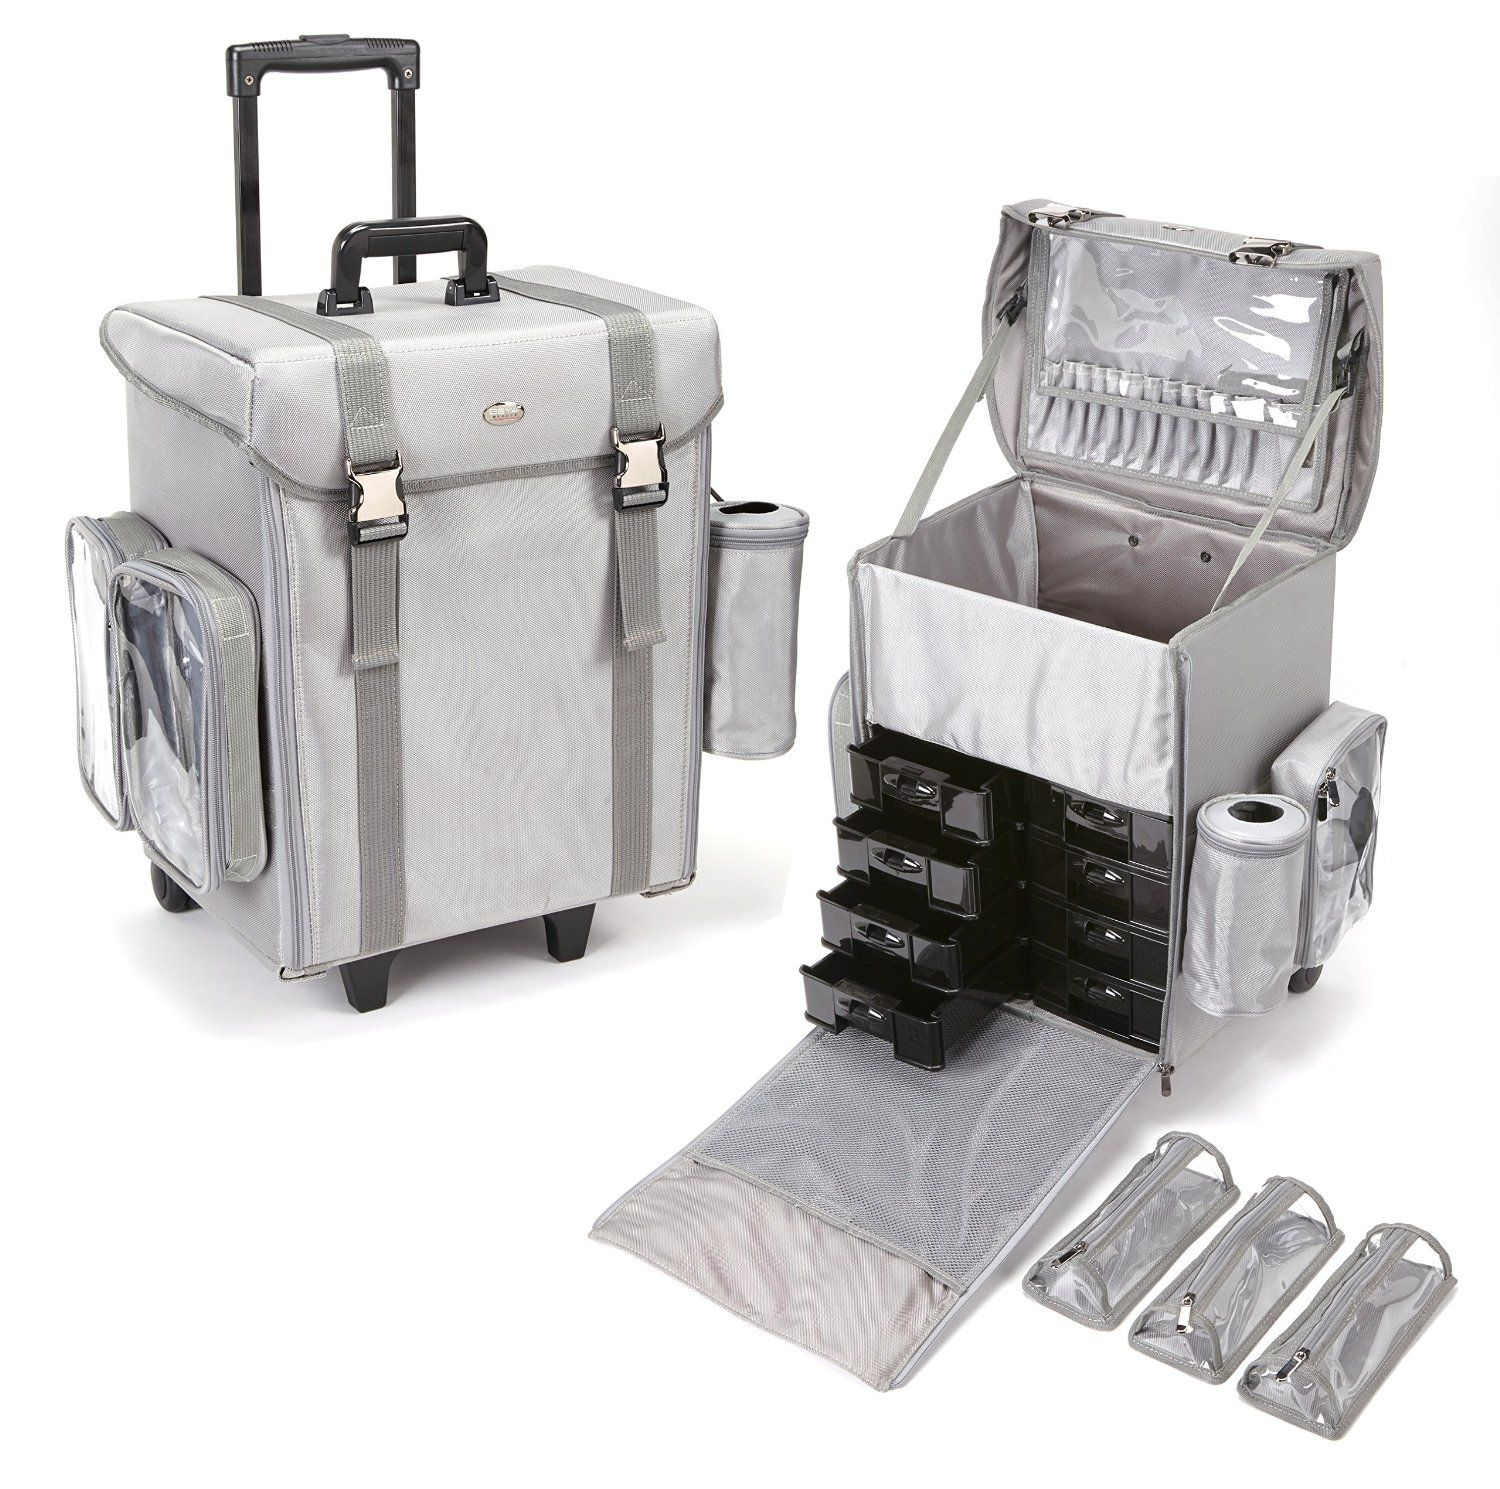 Attractive Seya Soft Sided Nylon Modular Professional Rolling Makeup Case W/ Removable  Makeup Bags (Silver/Grey) Modular Case Includes A Multitude Of  Organizational